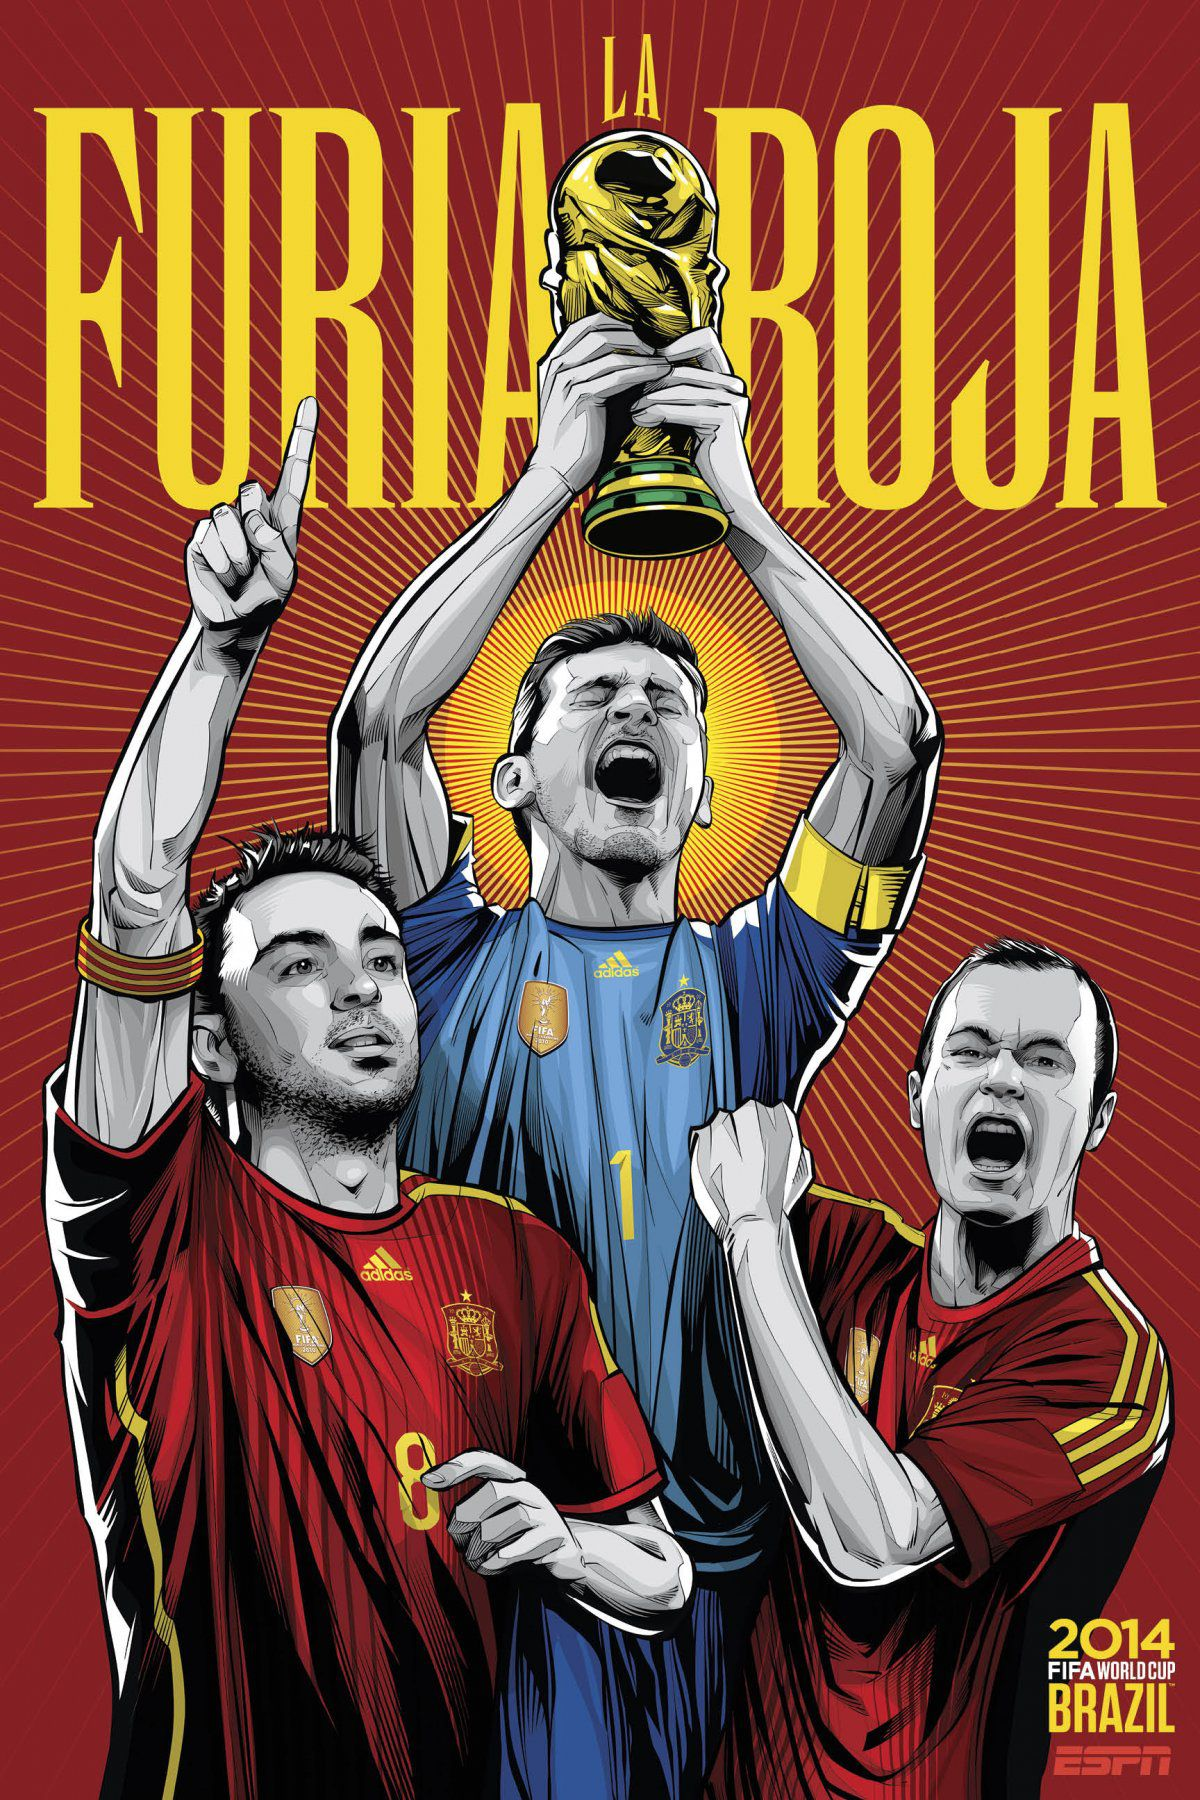 ESPN poster world cup brazil 2014 of Spain